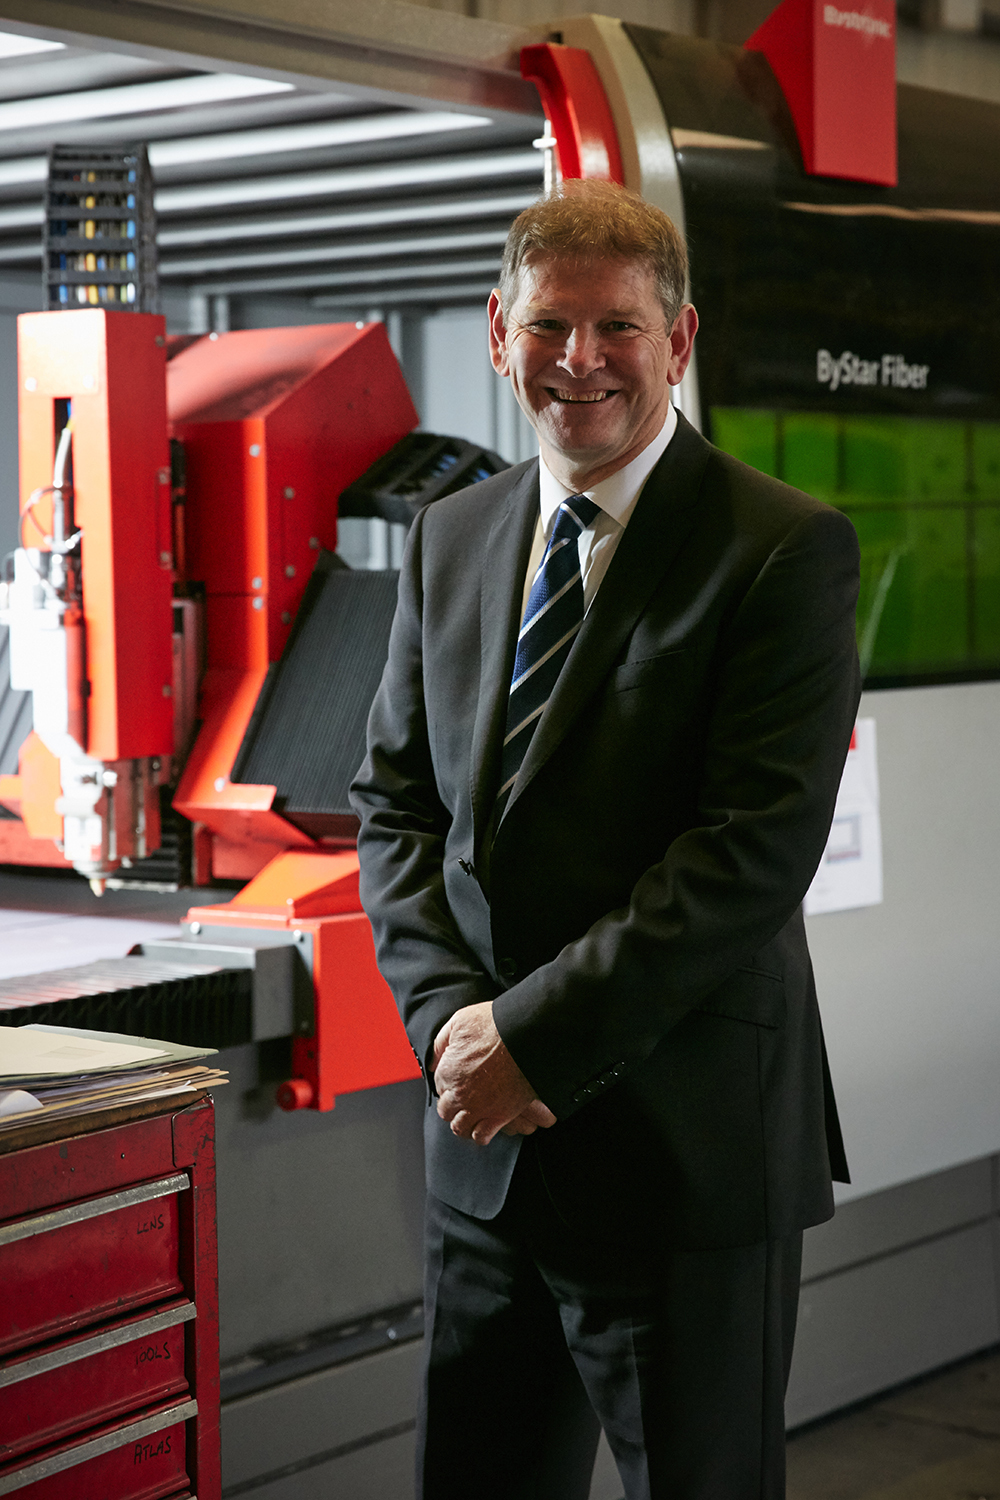 GOOD INVESTMEMT: Charles Corner, MD of Malton Laser